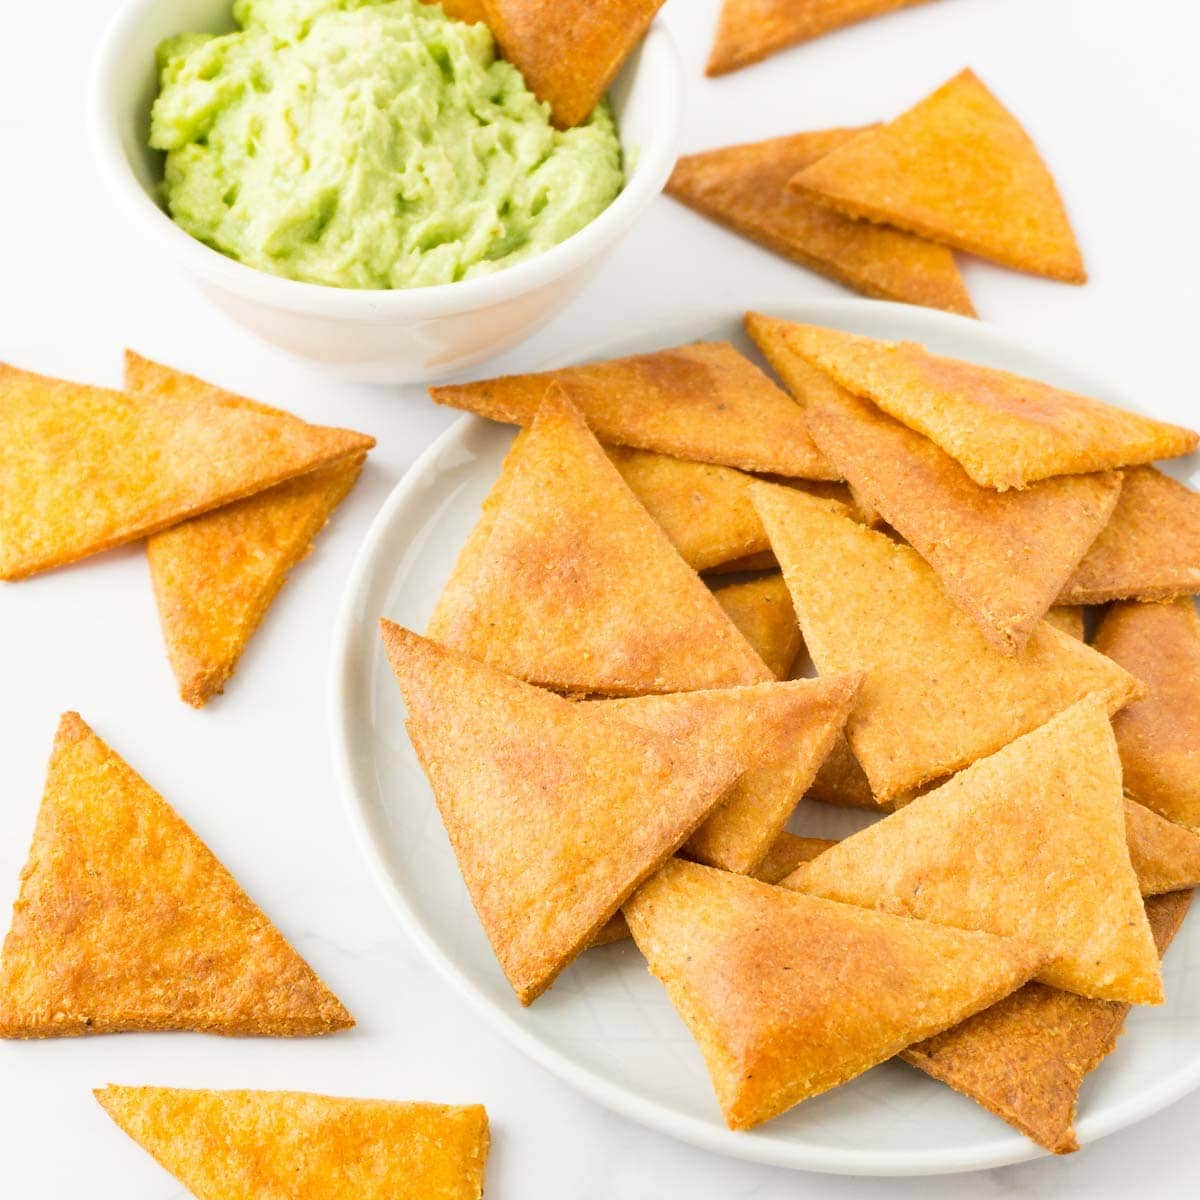 A small round plate with tortilla chips, more chips are lying around, bowl filled with guacamole on the background.